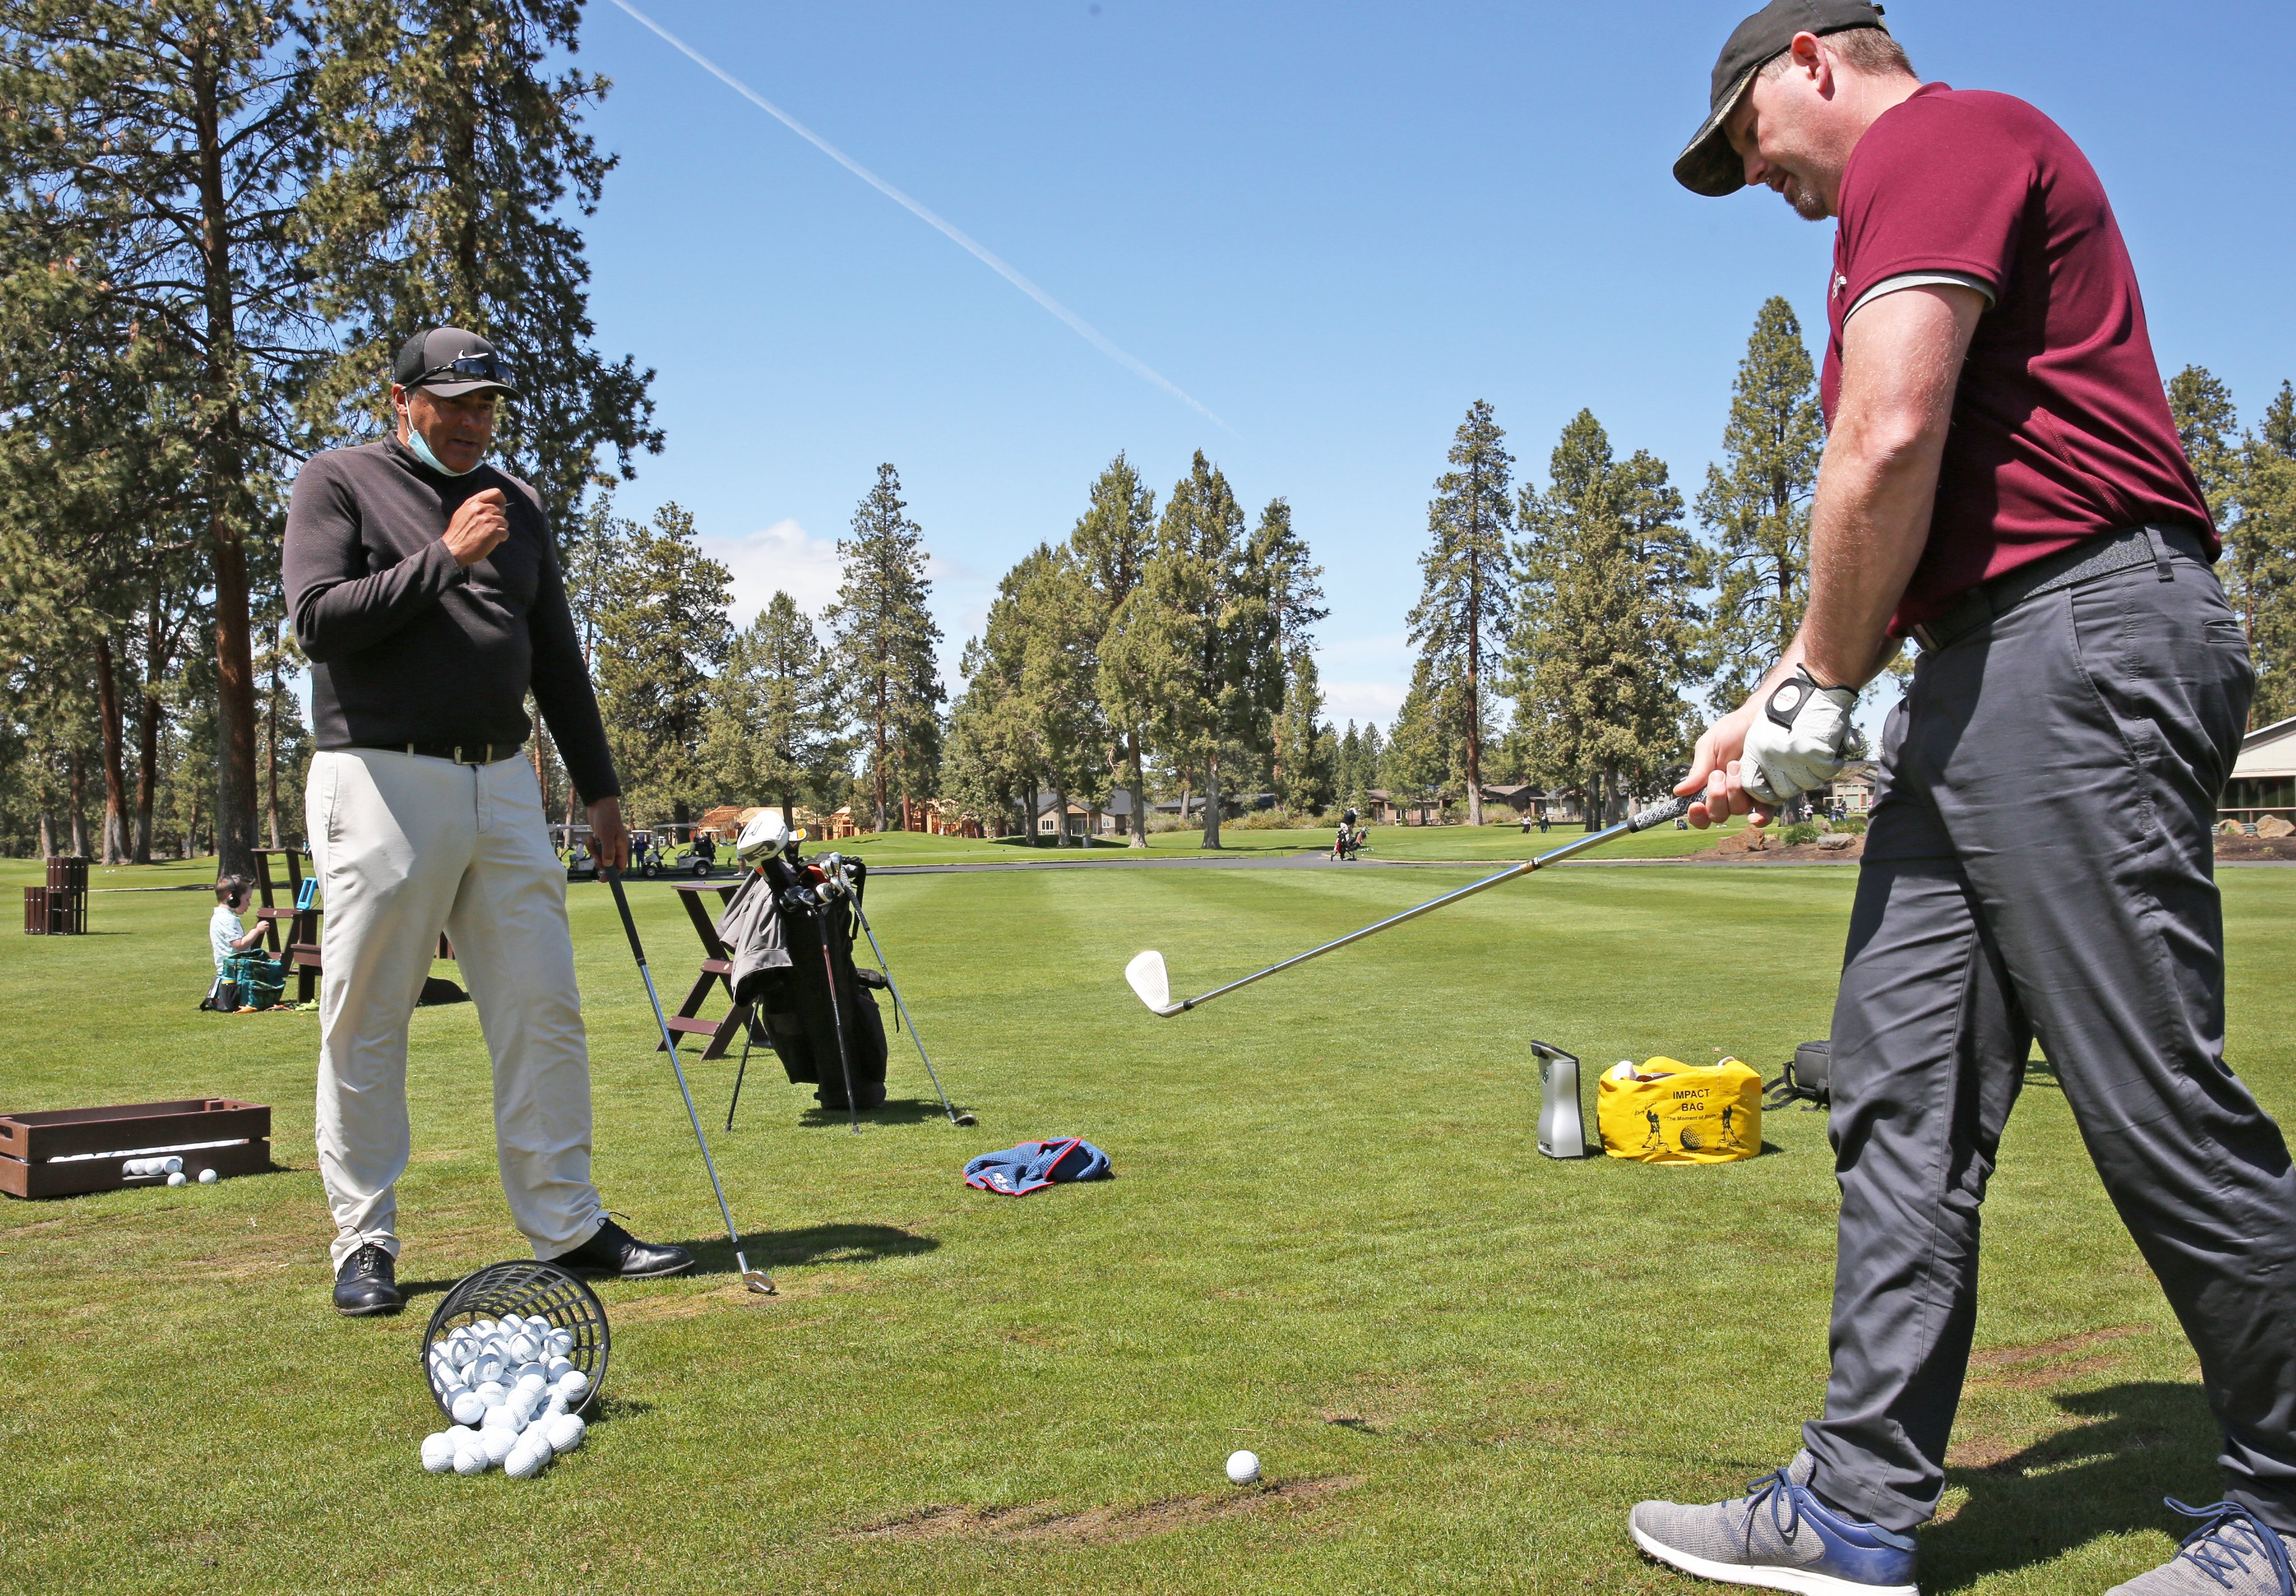 Tips to improve your golf game from Central Oregon pros   Sports   bendbulletin.com